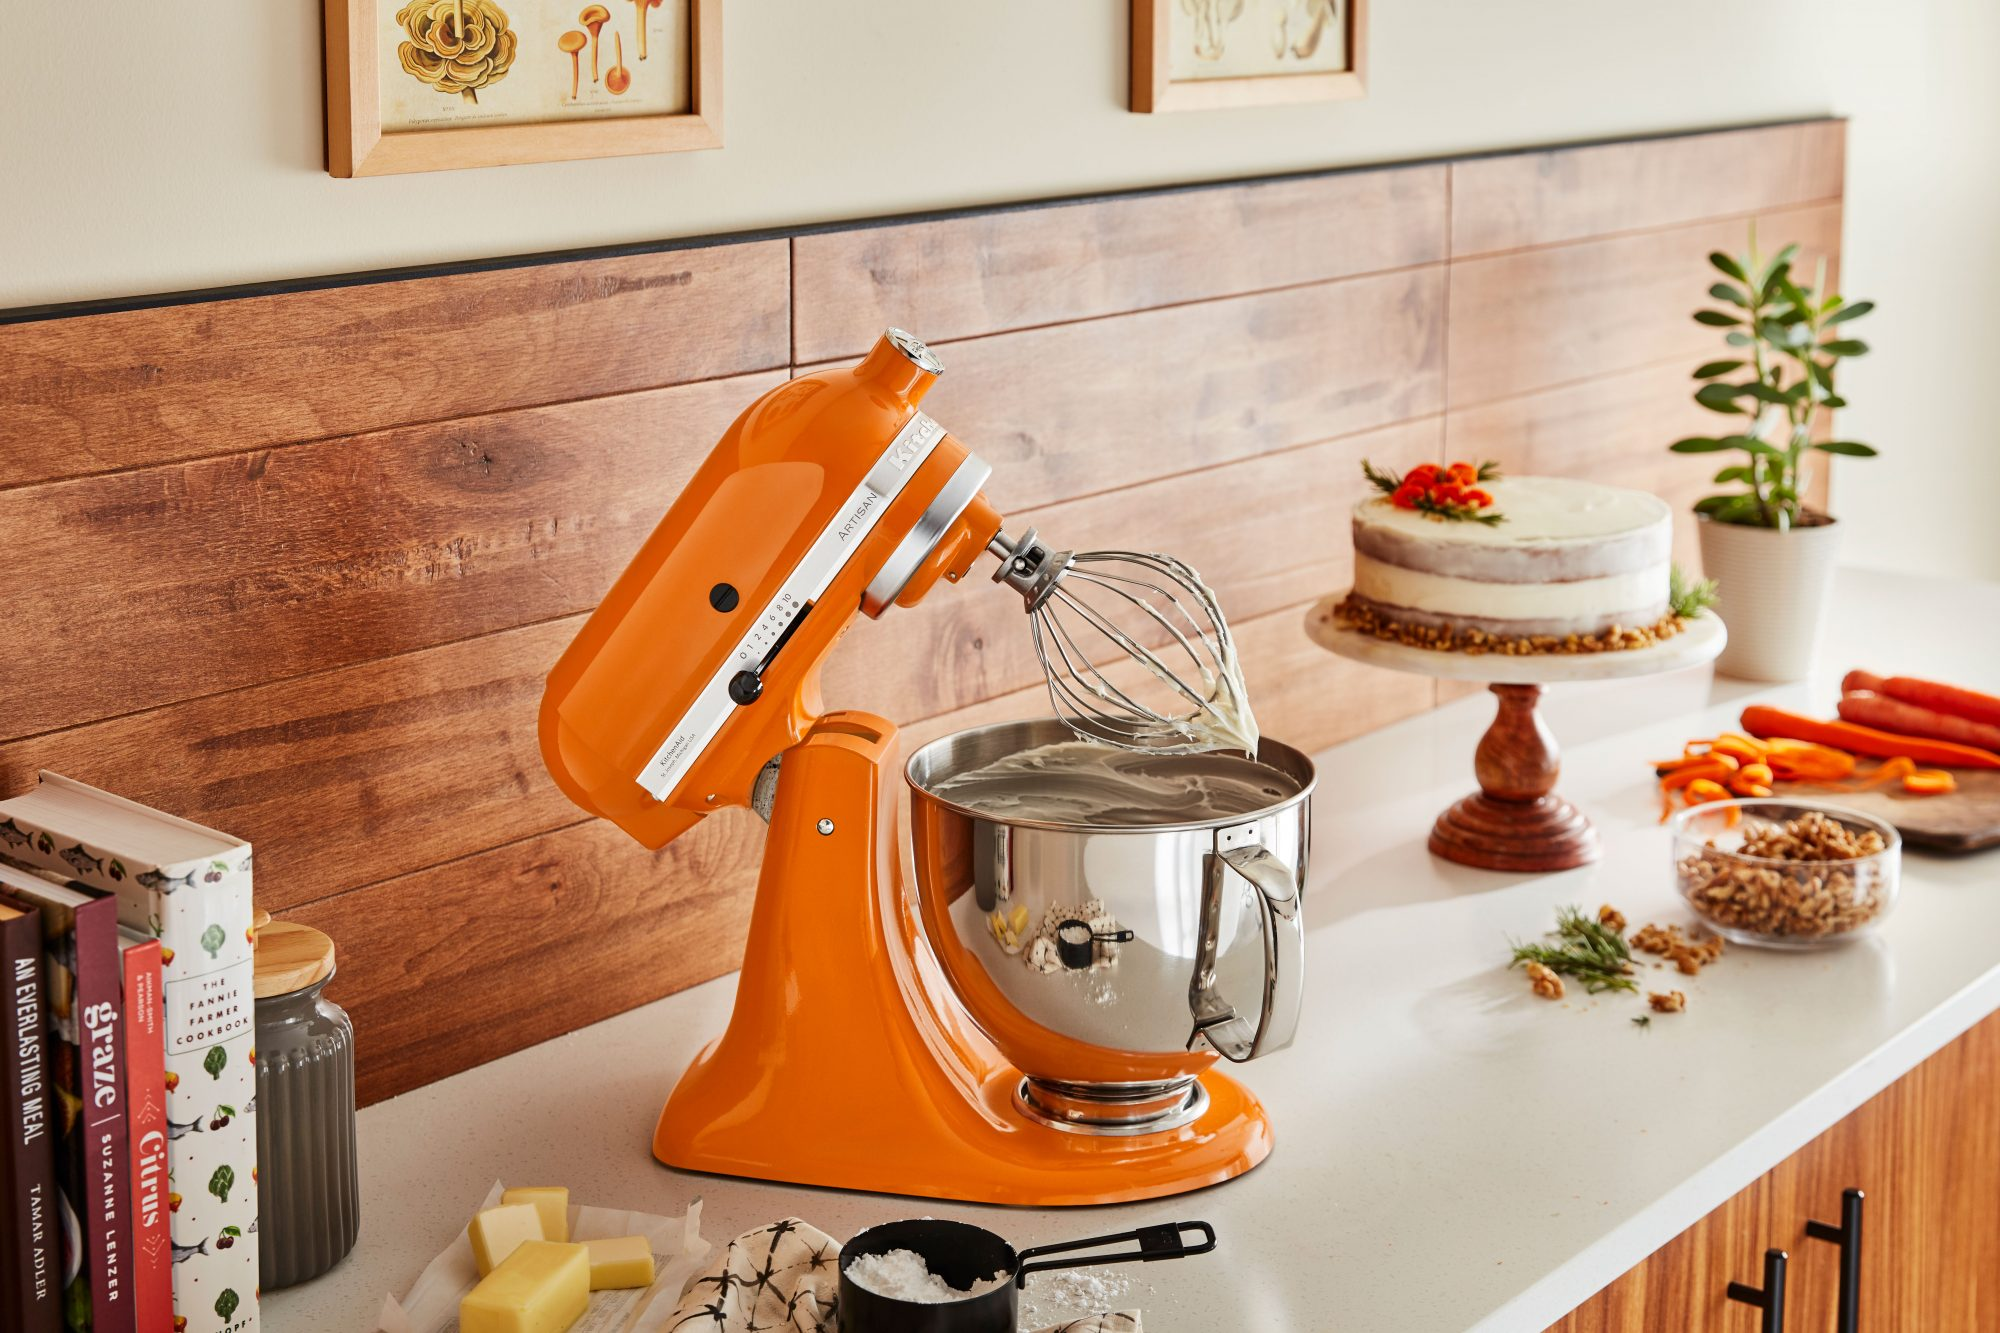 KitchenAid color of year